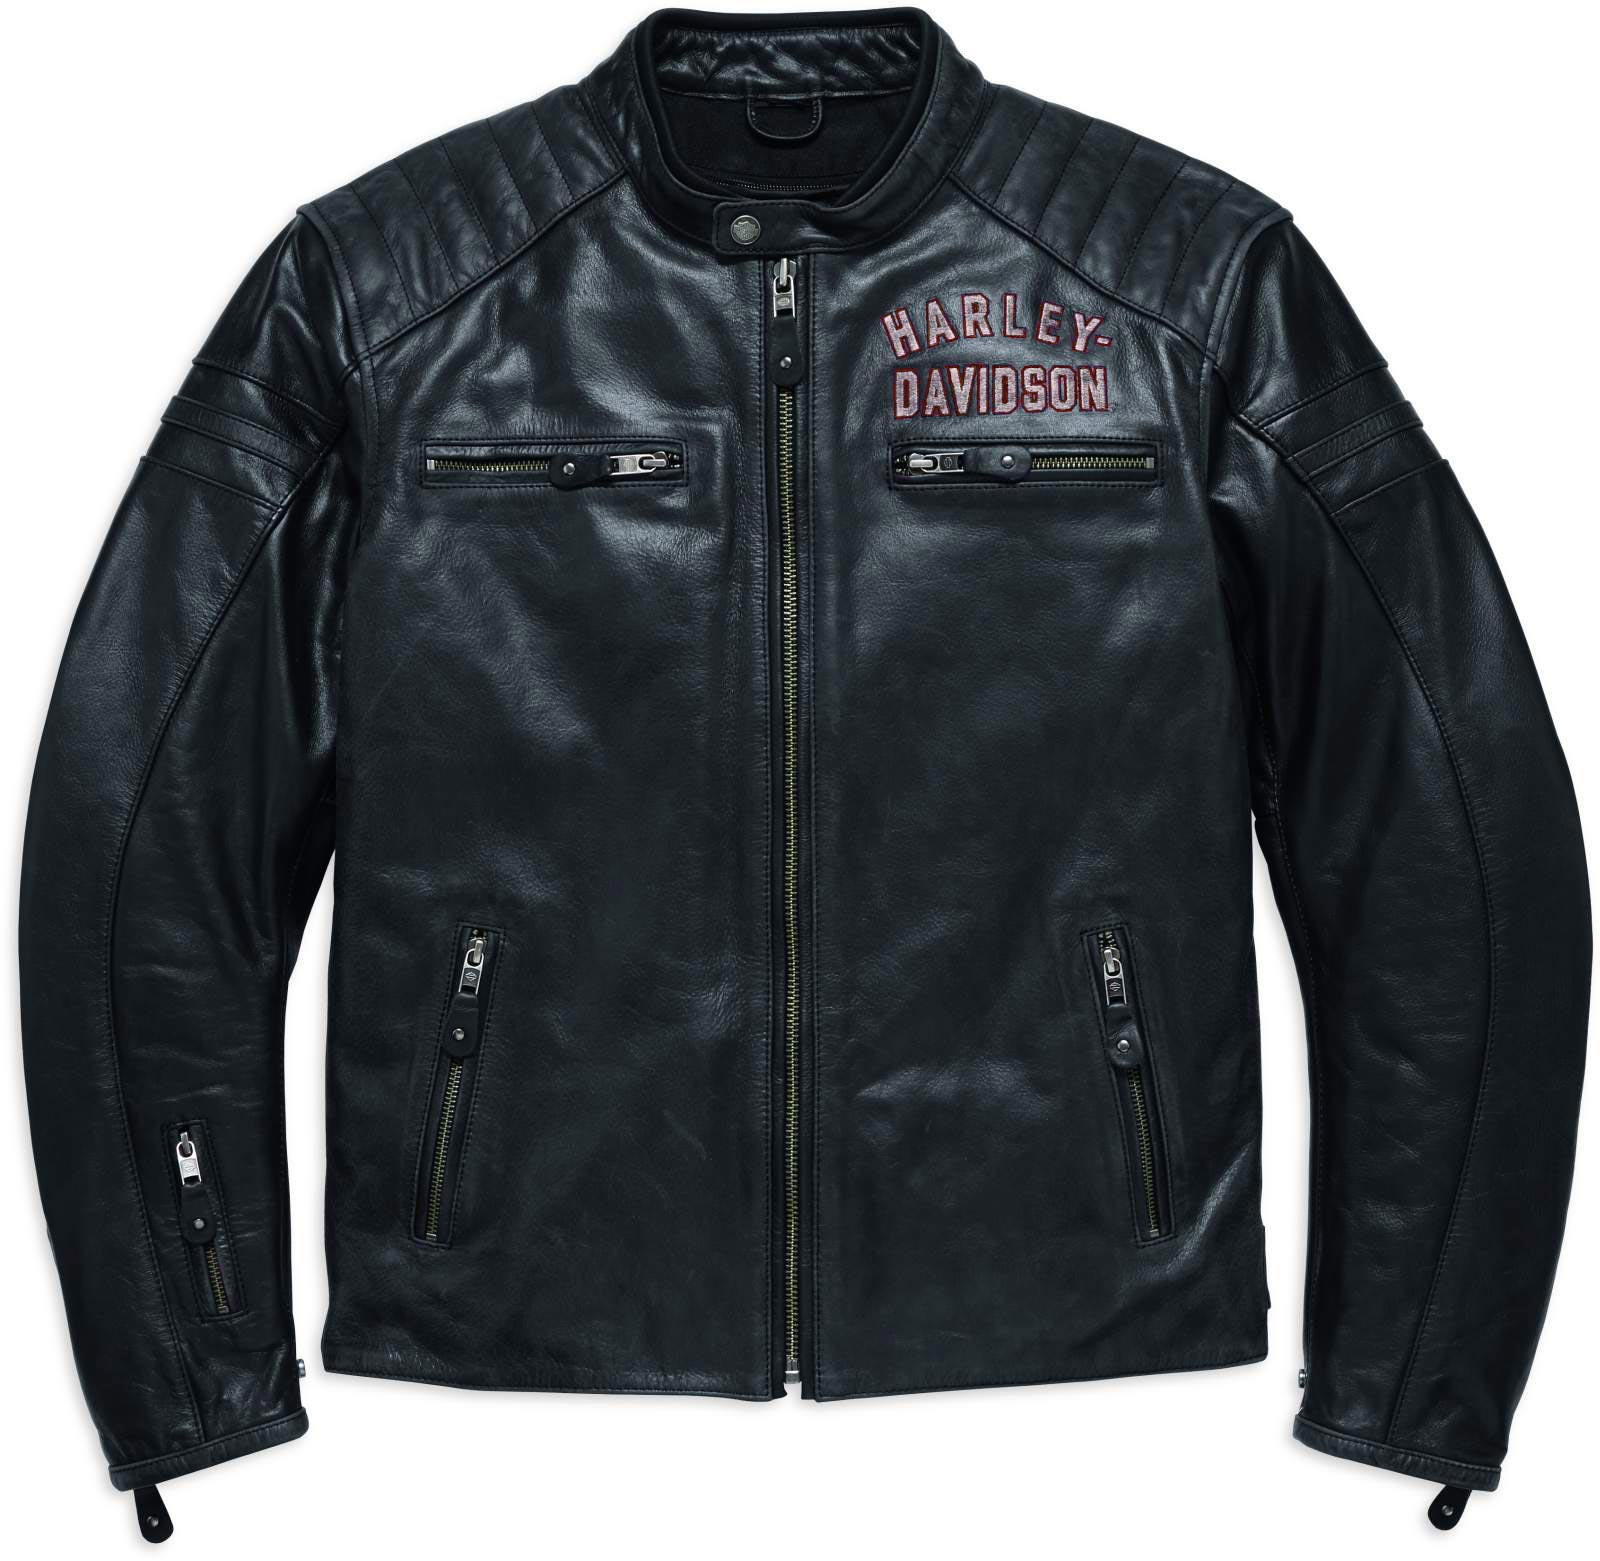 Harley Davidson Non Leather Jackets